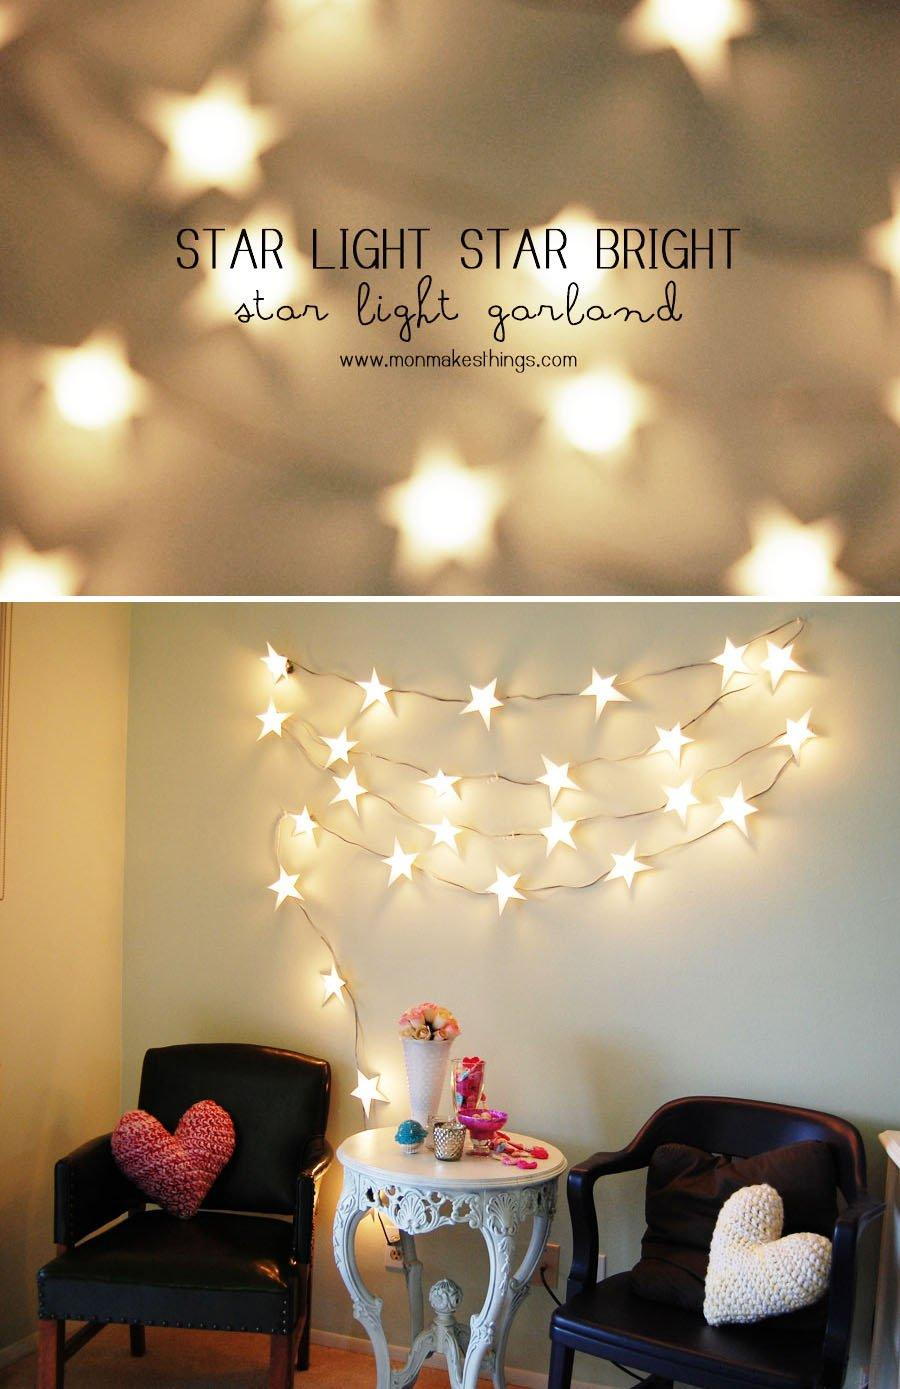 String Light Décor Ideas You Can DIY Throughout the Year